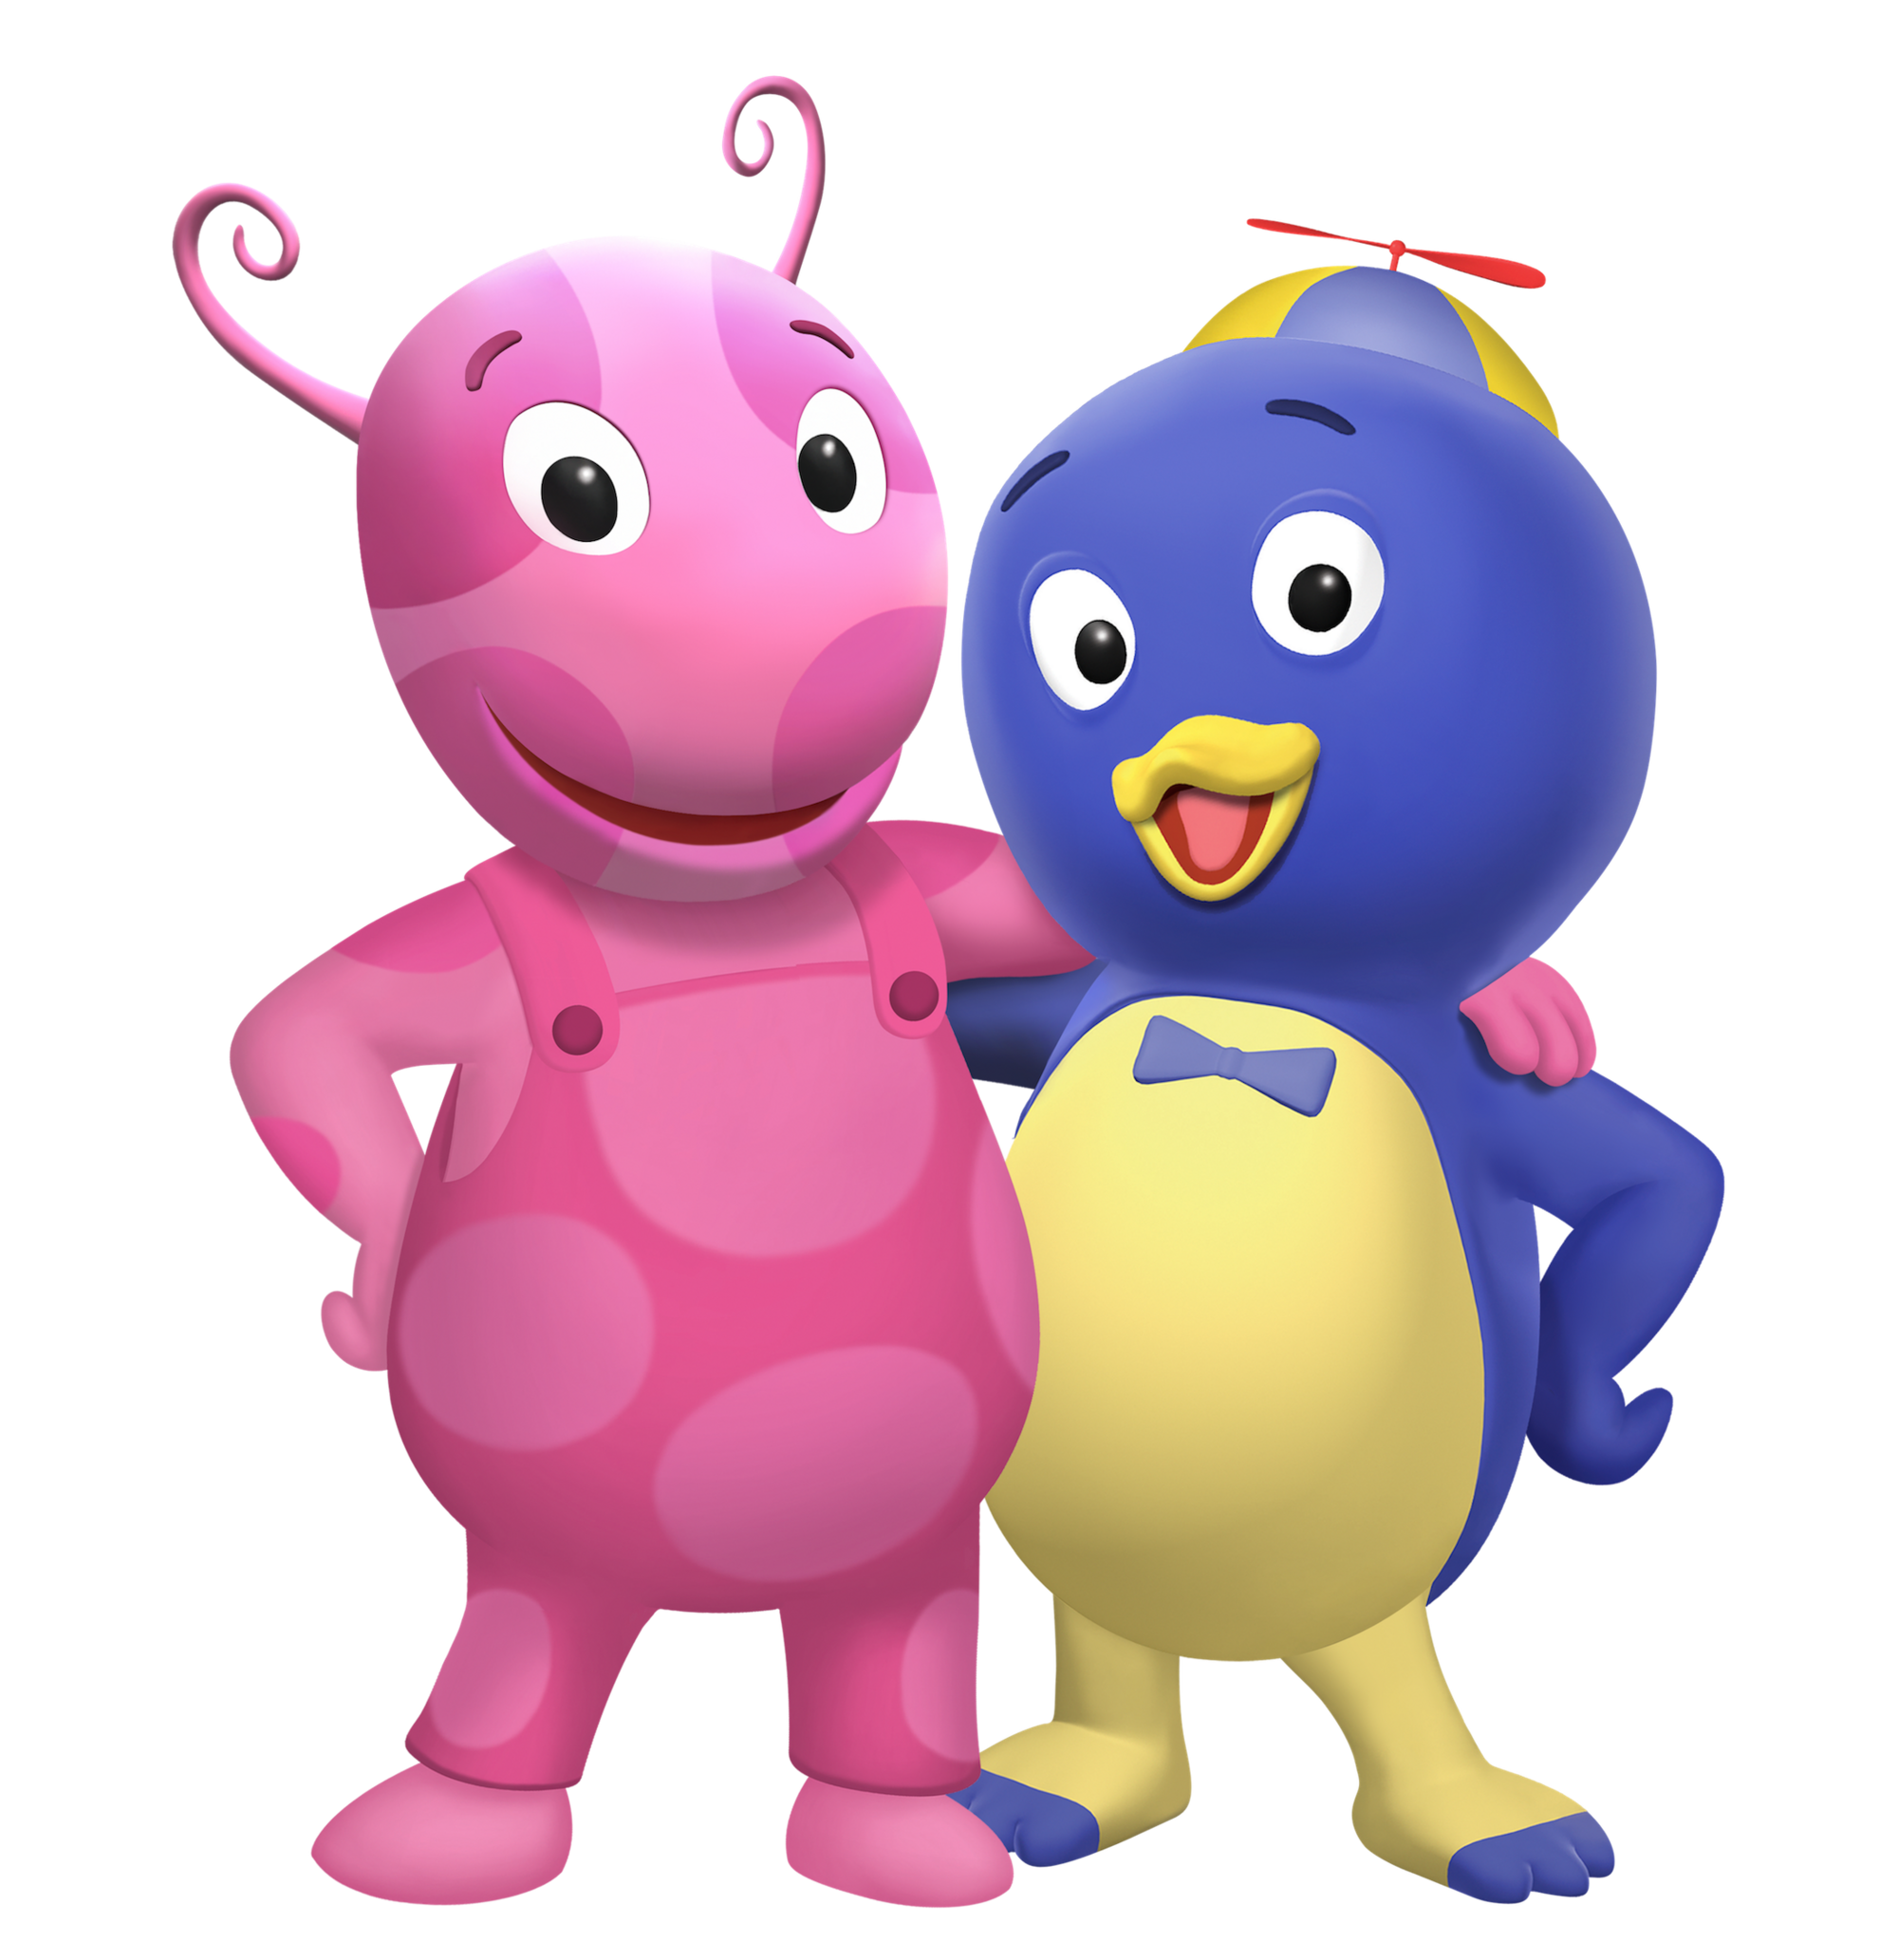 Uncategorized Uniqua From The Backyardigans uniquaimages the backyardigans wiki fandom powered by wikia uniqua and pablo nickelodeon nick jr characters